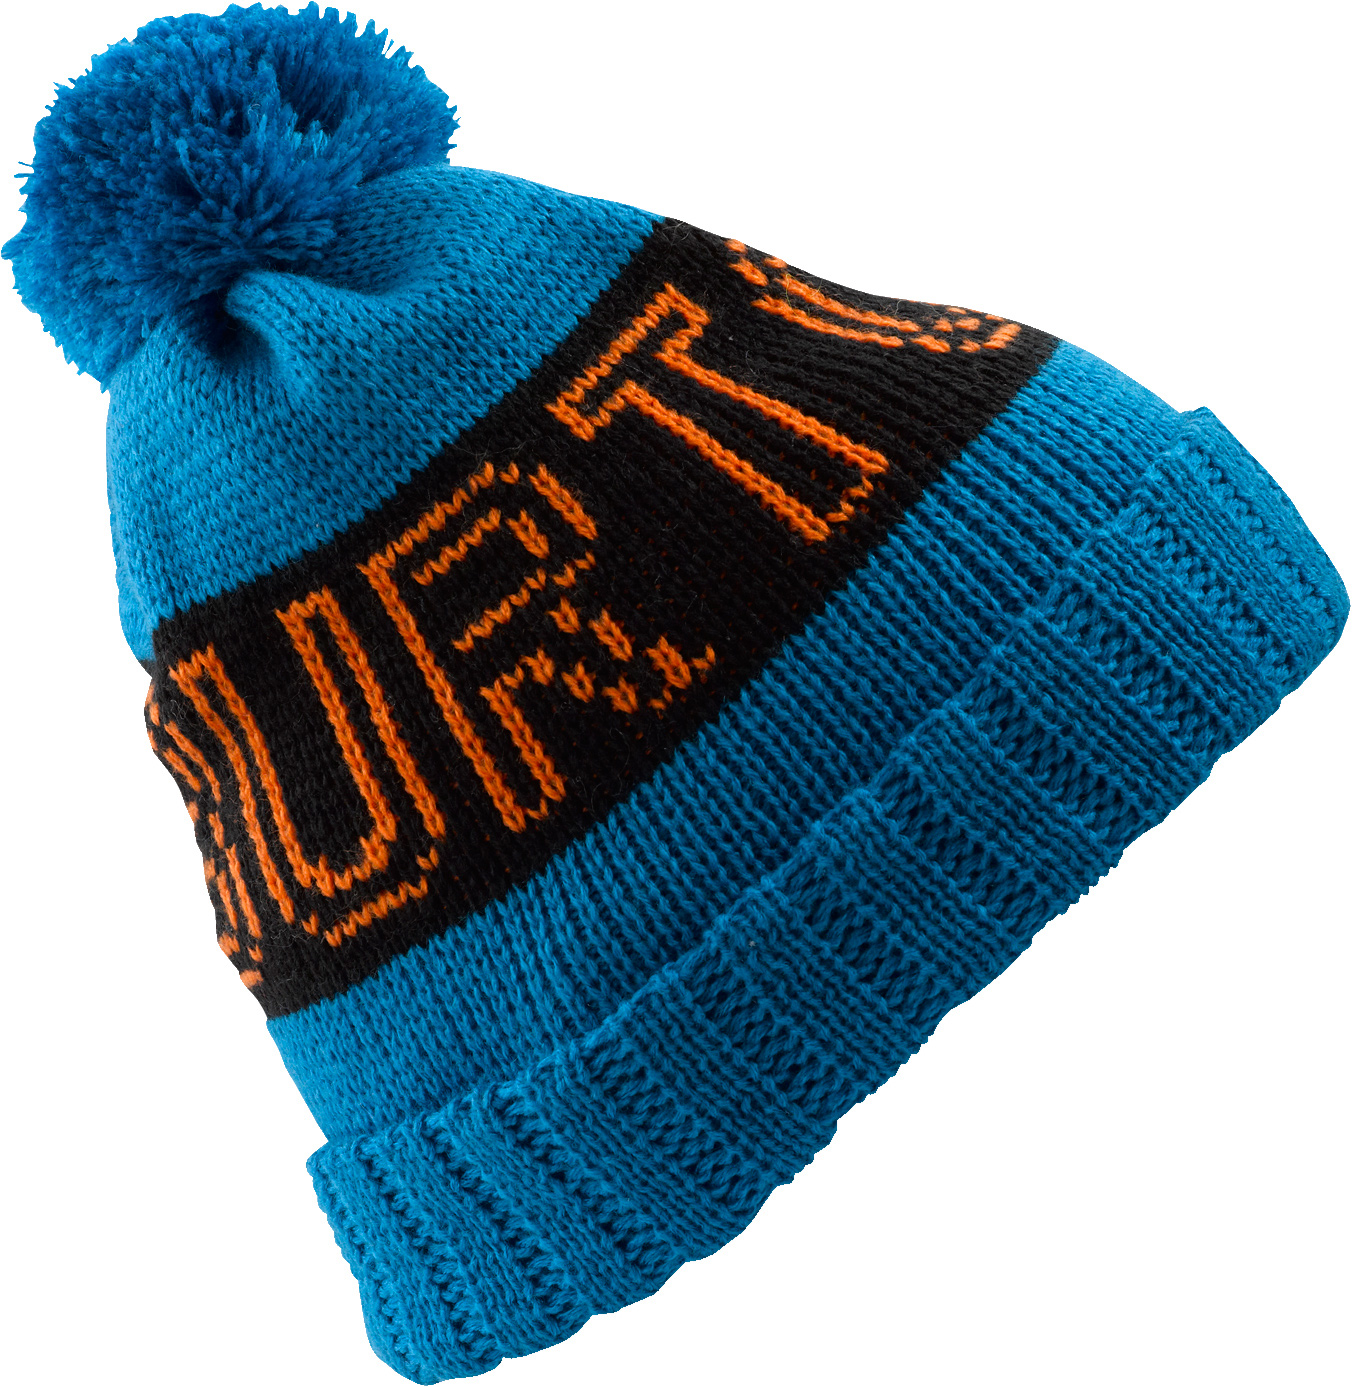 Snowboard Key Features of the Burton Viper Beanie: 100% Acrylic Vintage Inspired Beanie with Burton Word Mark Fold Up with Skully Fit - $27.00